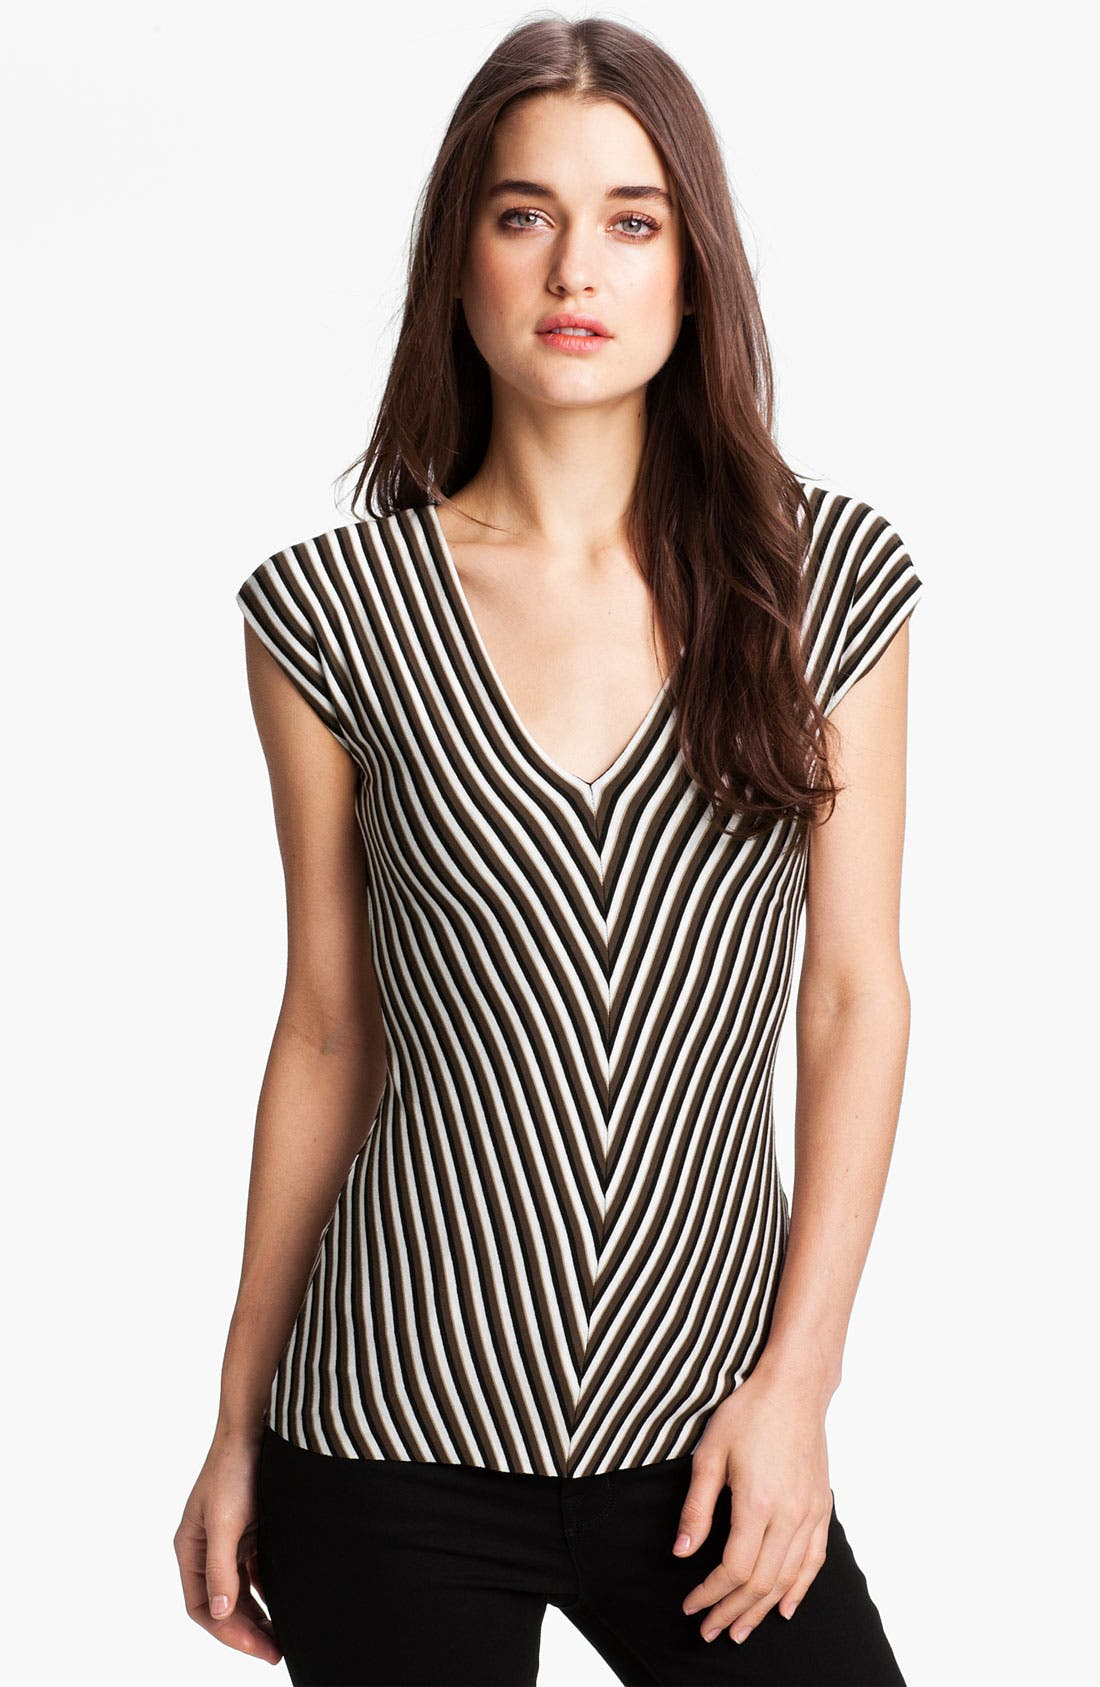 Main Image - Bailey 44 'Operation' Chevron Stripe Top